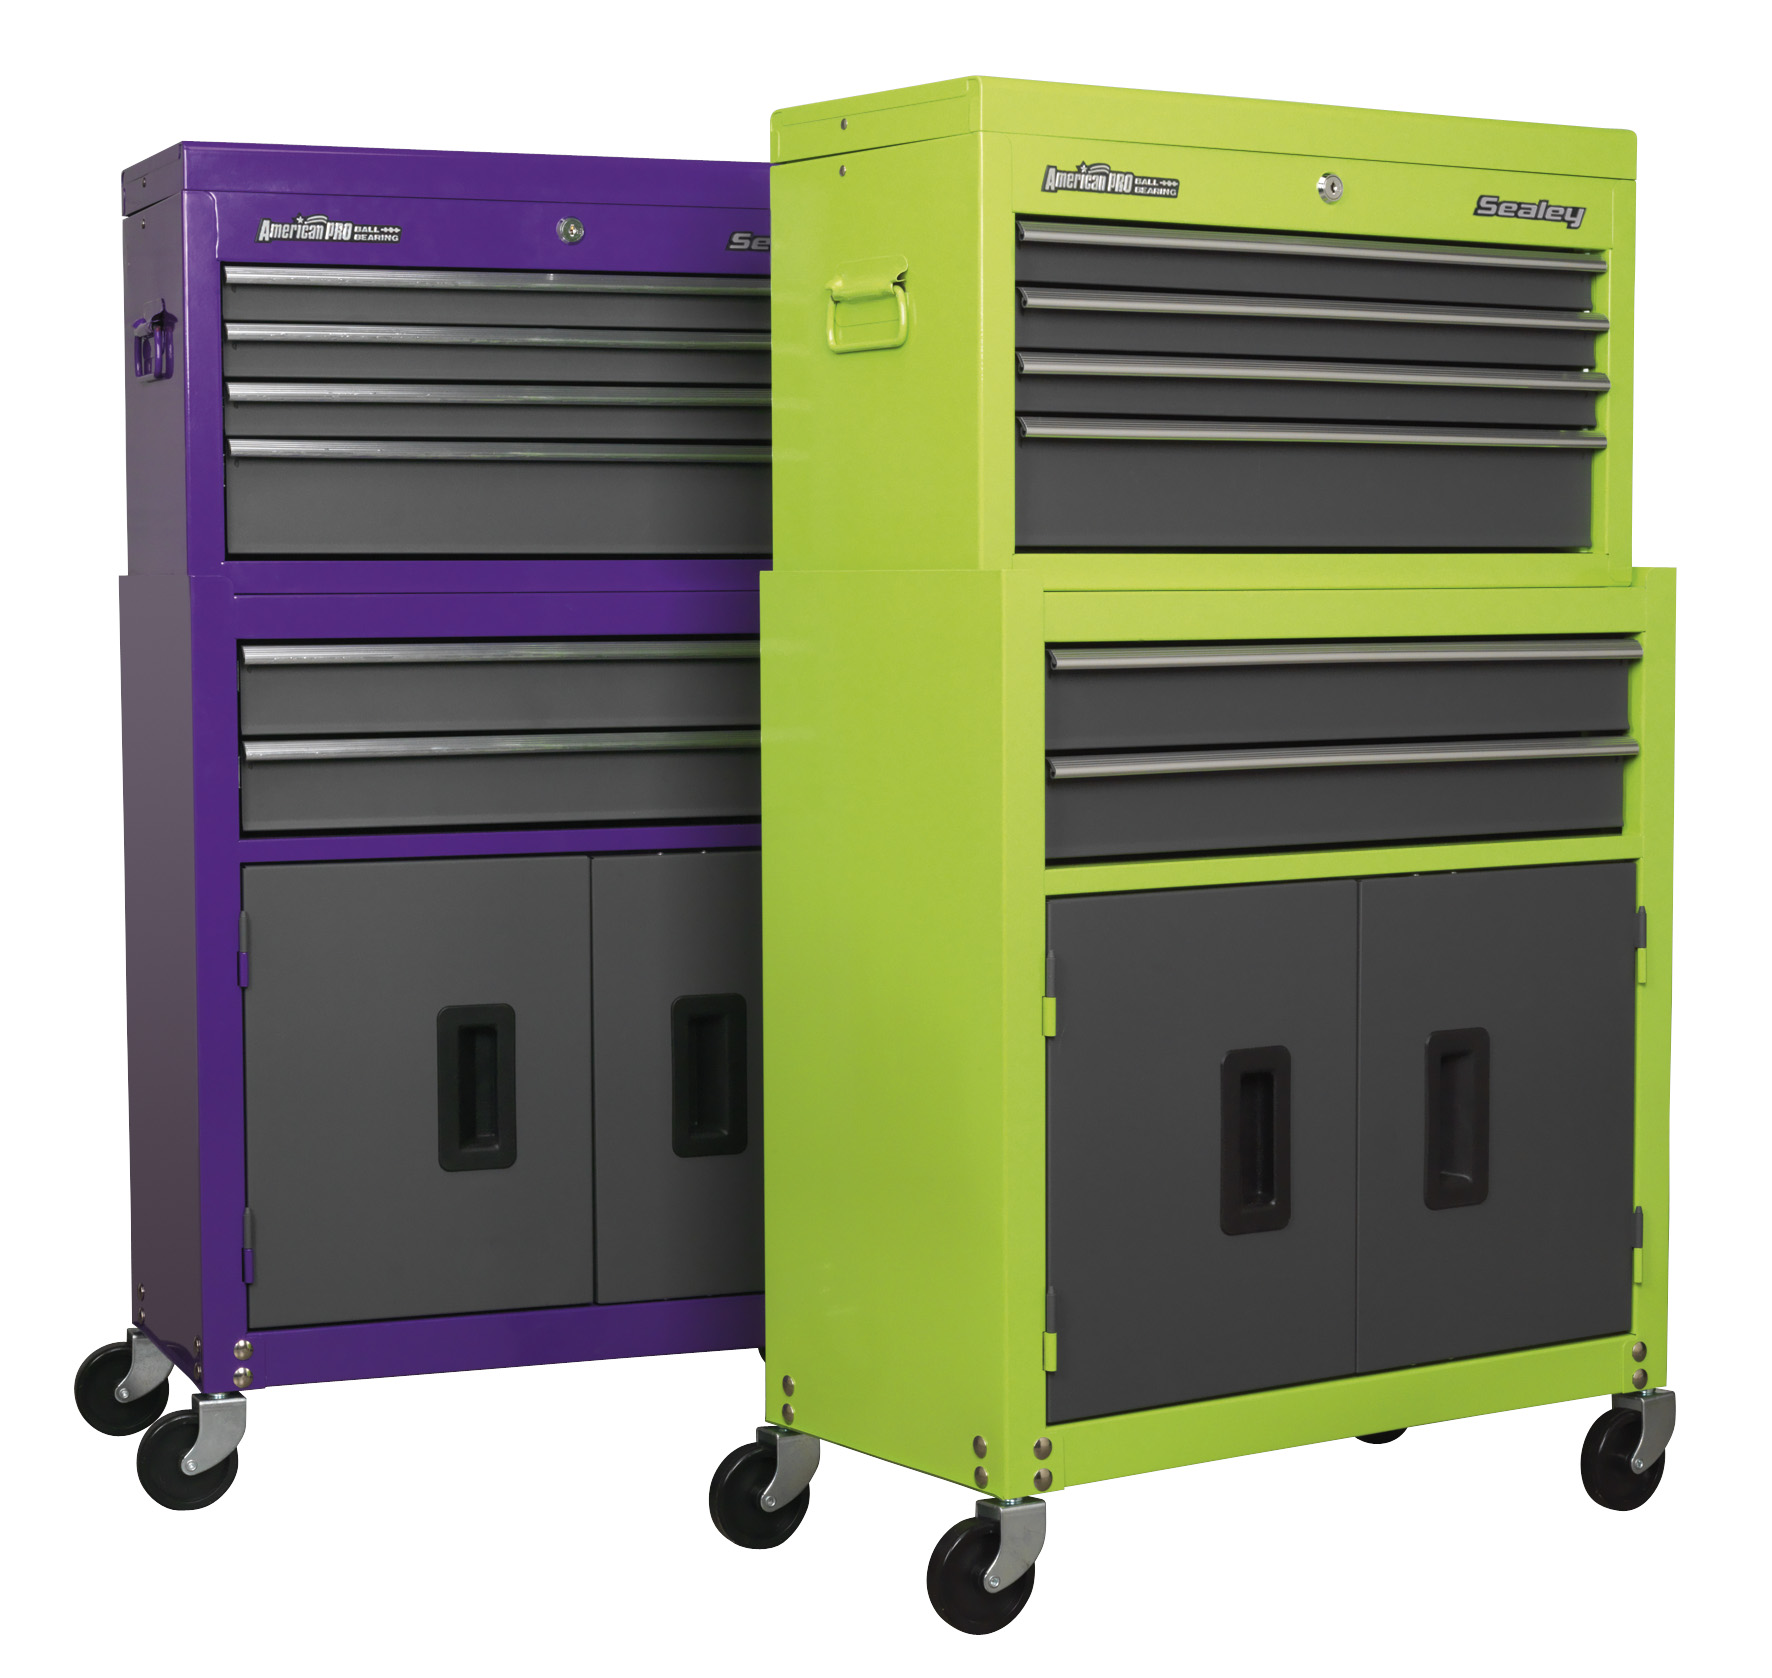 Sealey – Storage and workstations promotion